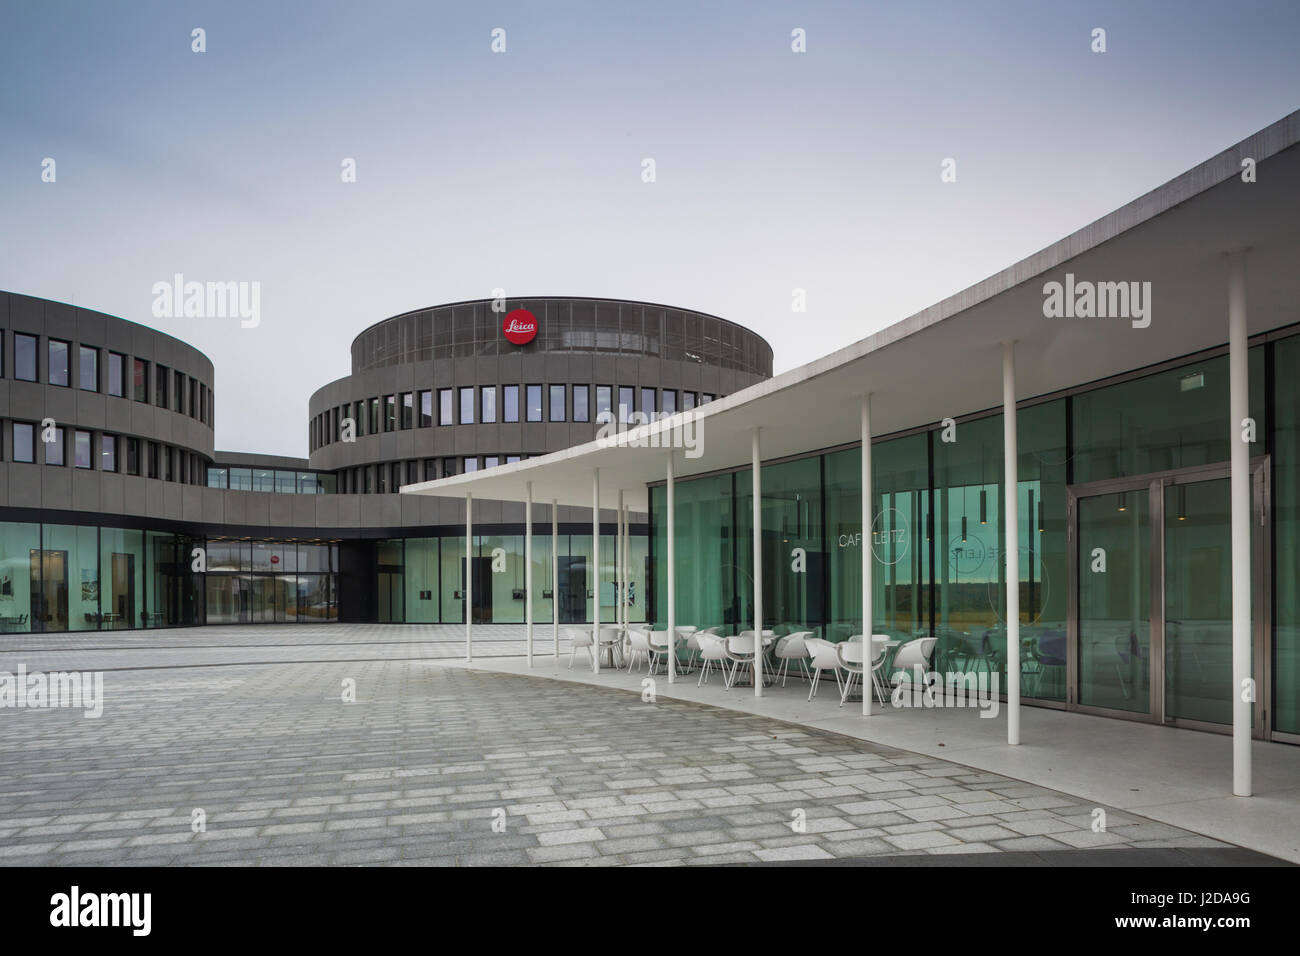 Germany, Hesse, Wetzlar, Headquarters of the Leica Camera Company, opened in 2014, exterior view with Cafe Leitz - Stock Image